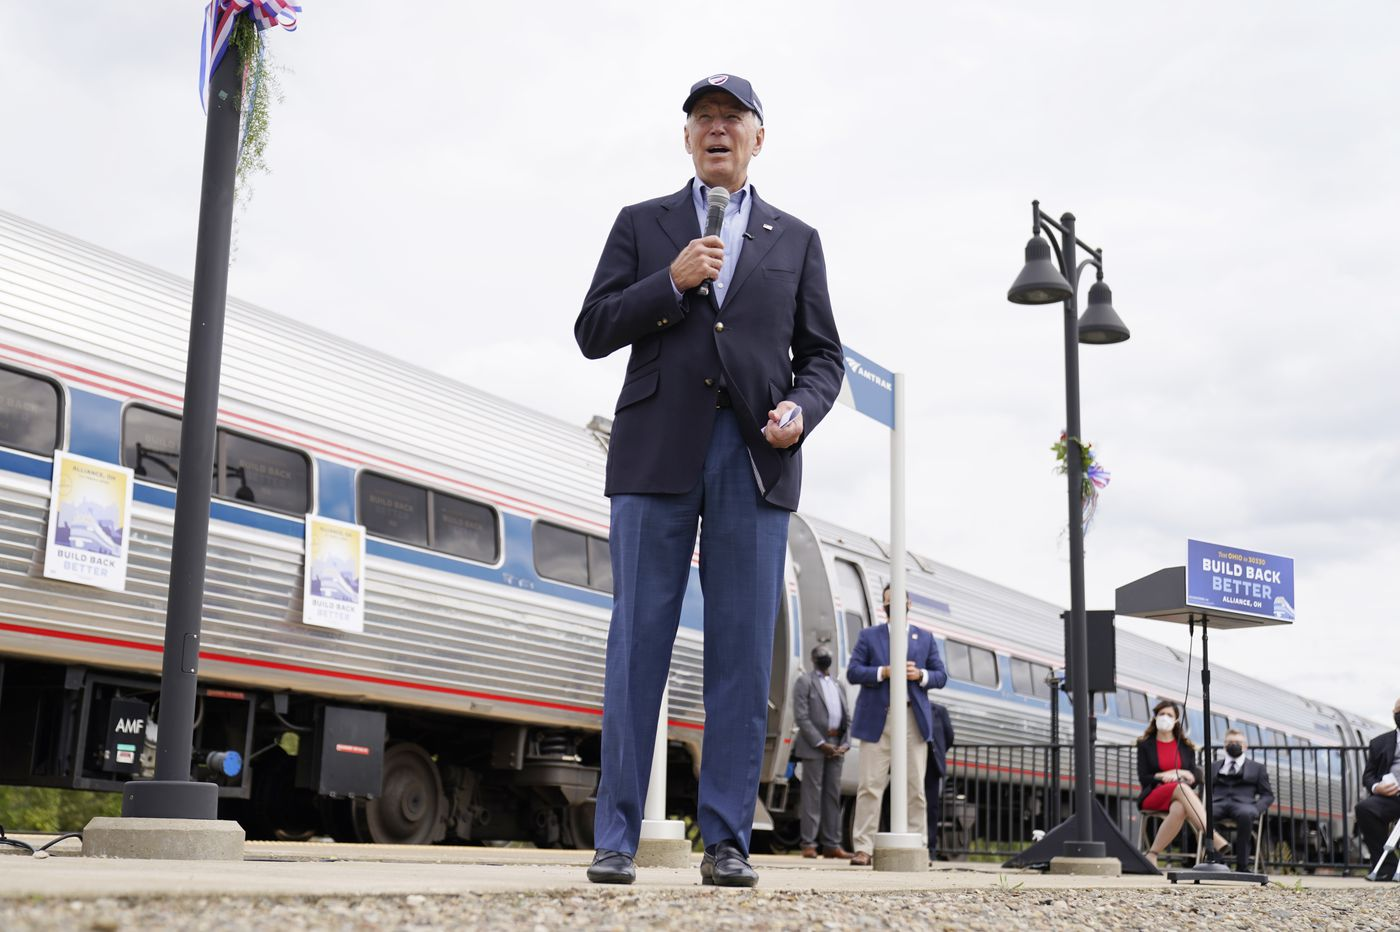 Air Force One to Amtrak One: Joe Biden can accelerate economic recovery by renewing America's rails | Opinion